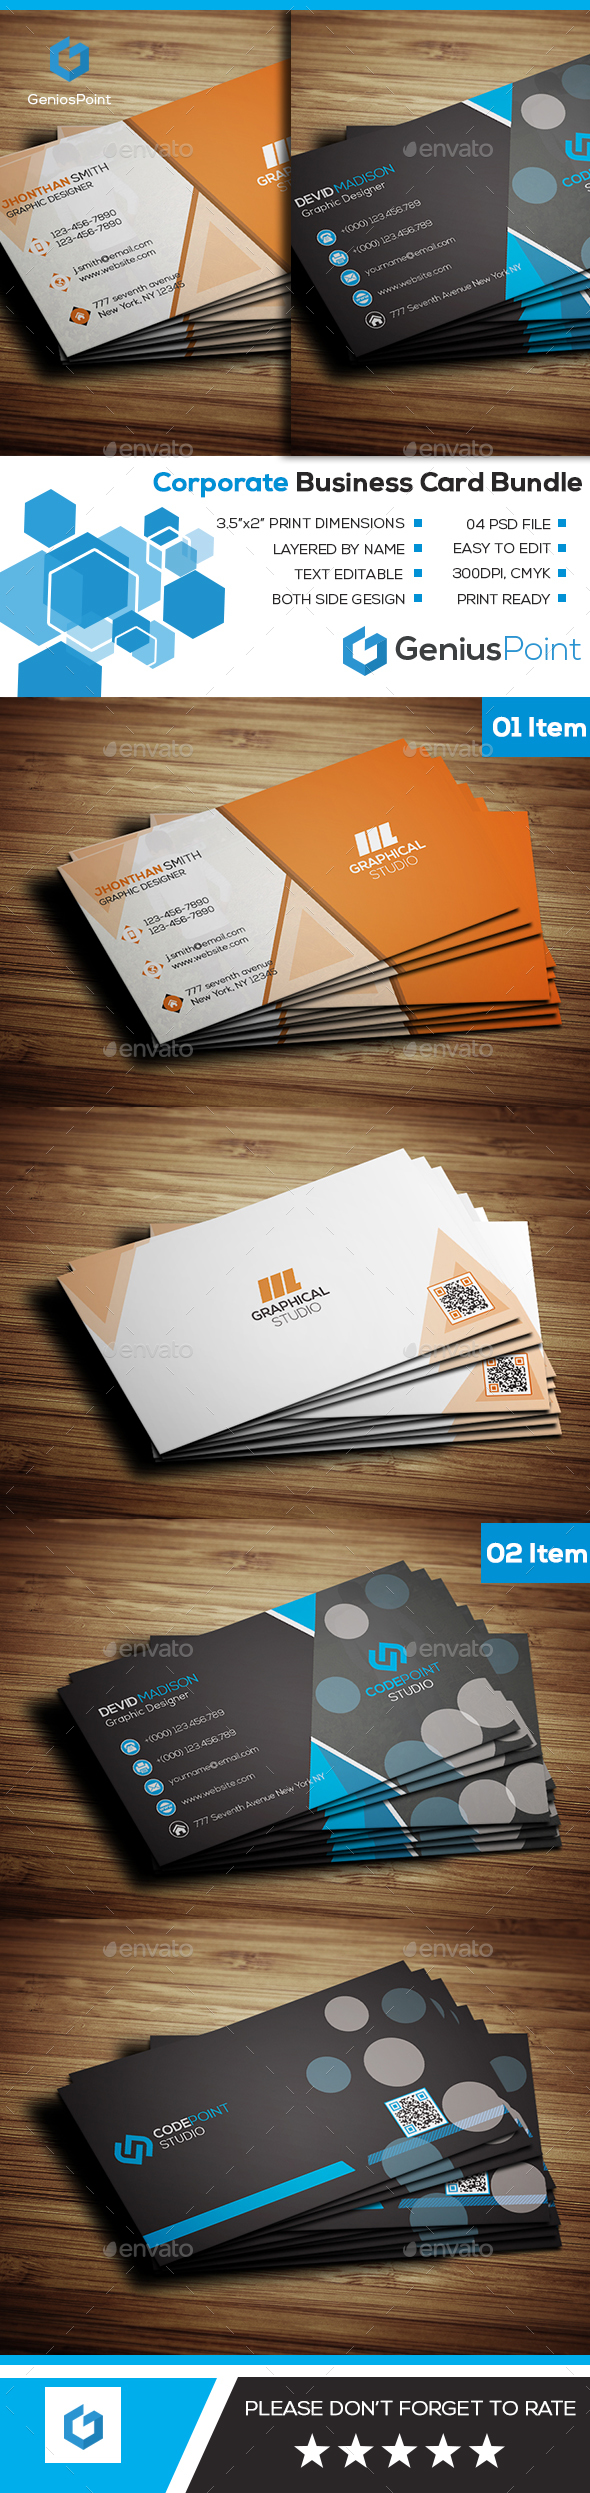 Business card bundle 10 by geniuspoint graphicriver business card bundle 10 business cards print templates reheart Choice Image